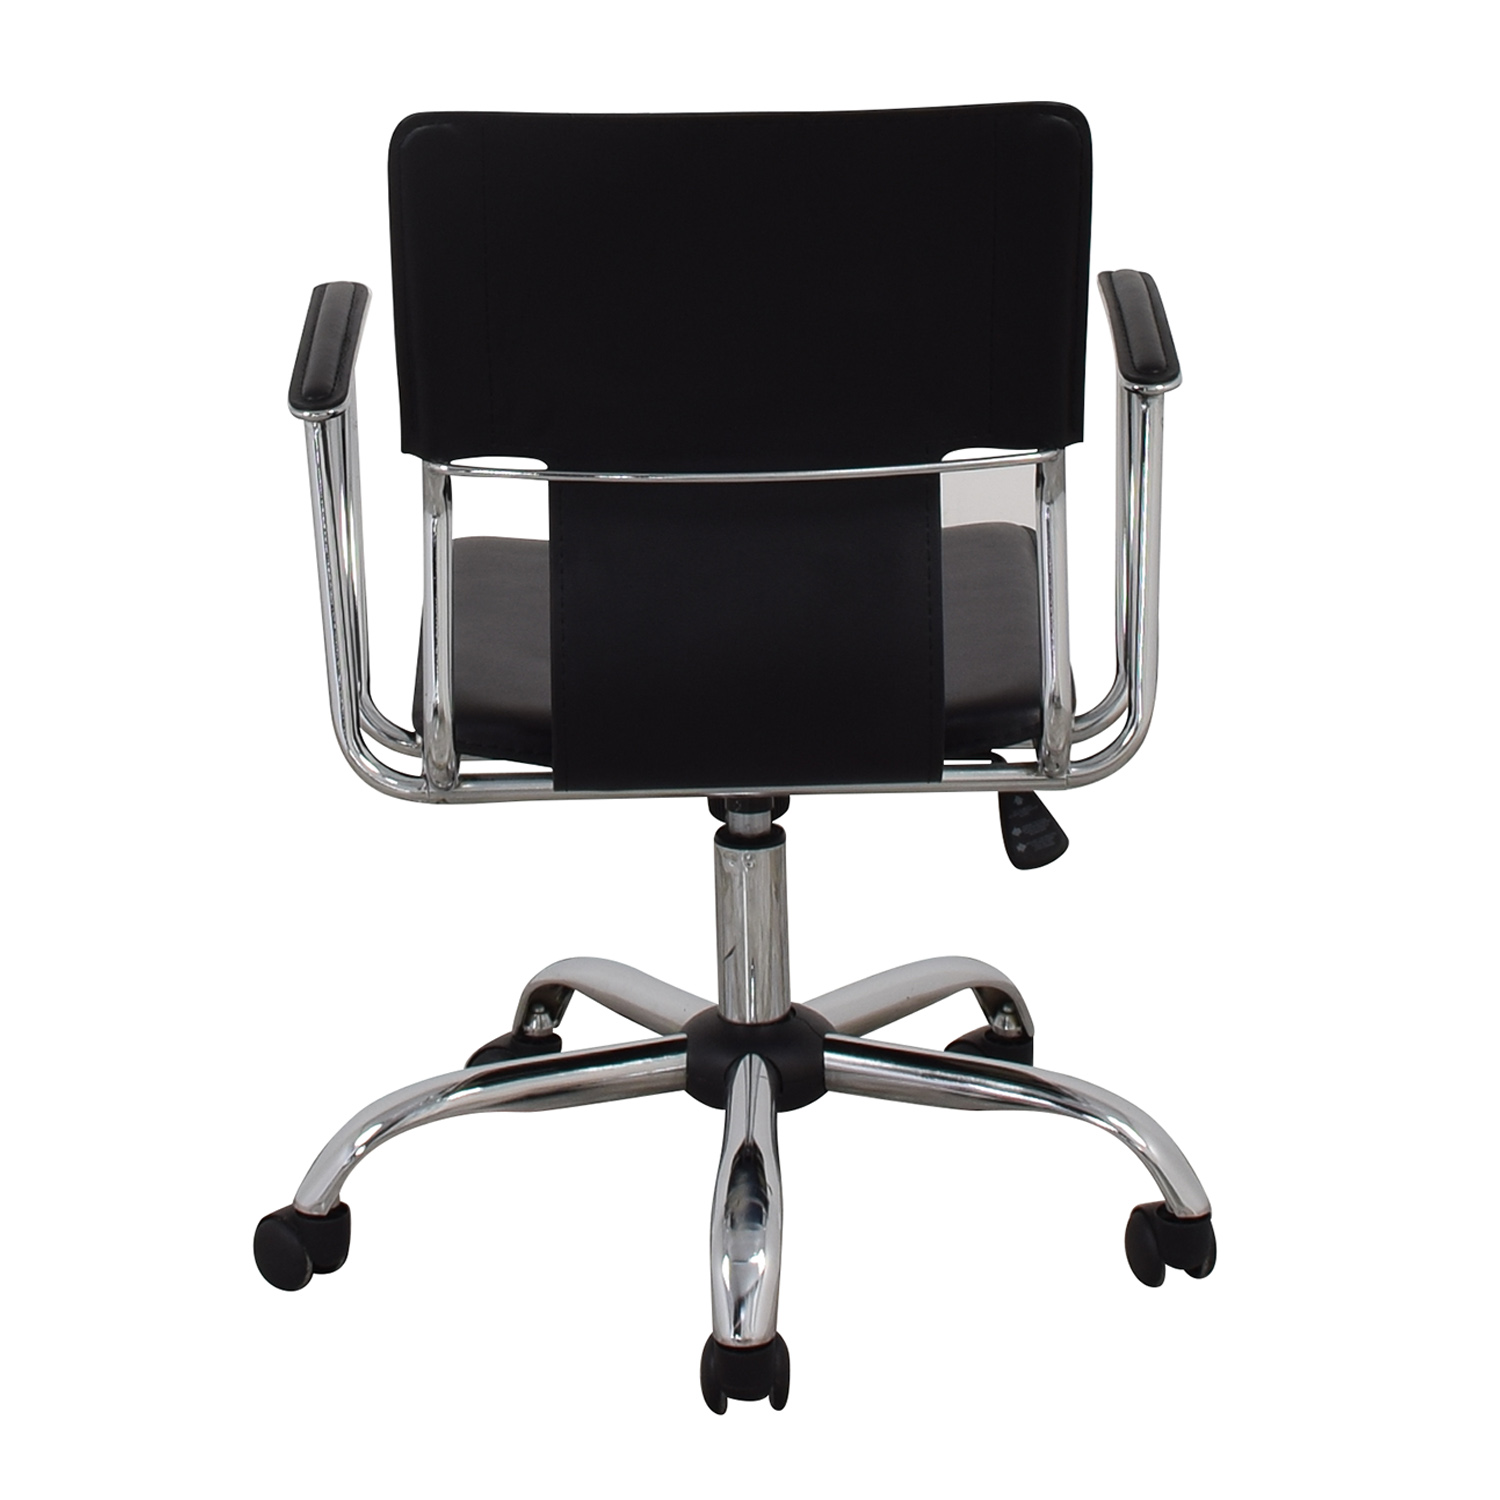 Bed Bath & Beyond Bed Bath & Beyond Desk Chair Chairs